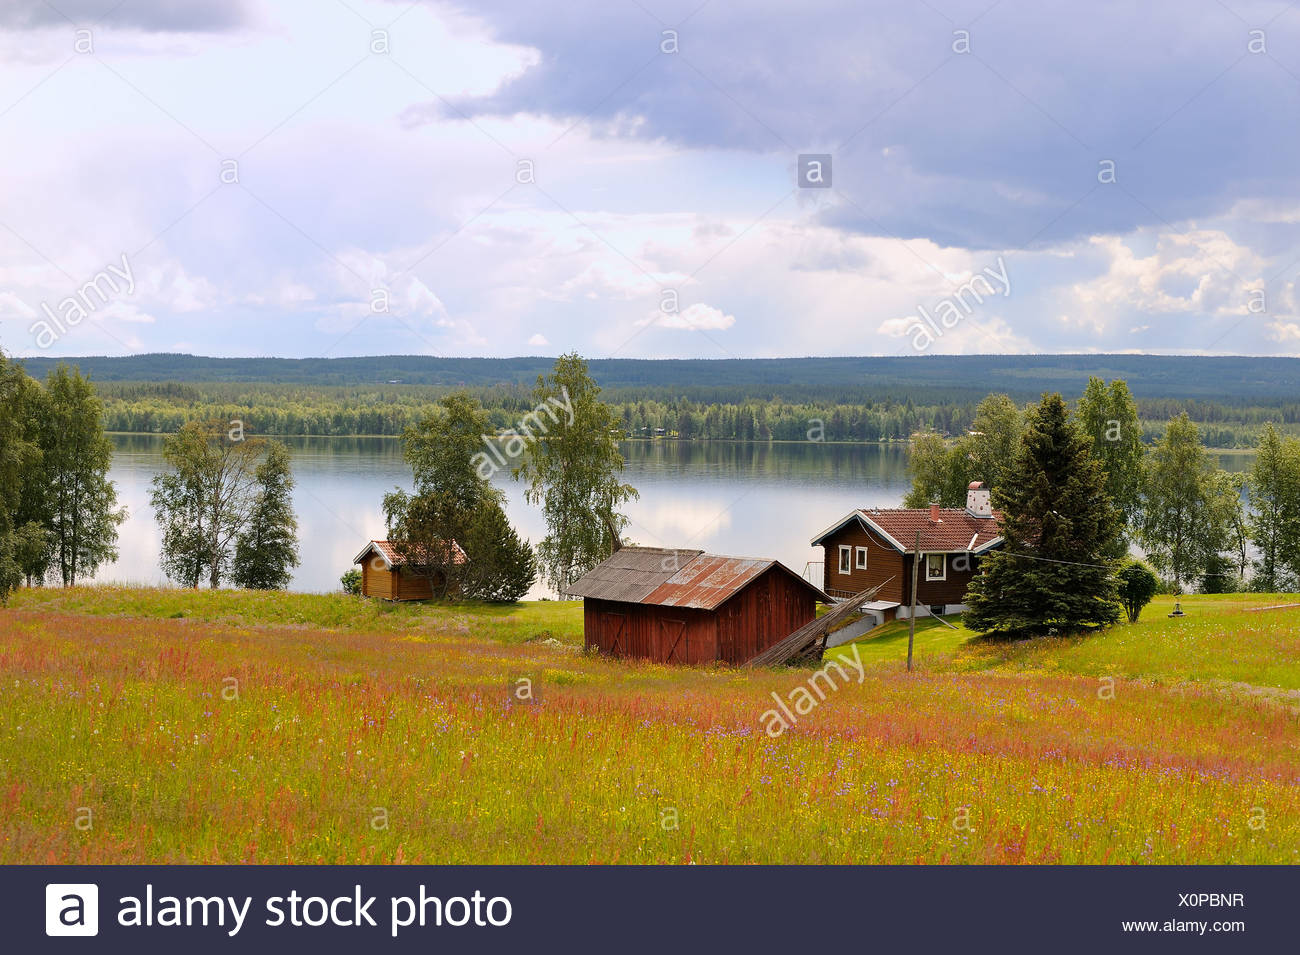 Country houses on landscape by peaceful lake at Öresjön - Stock Image